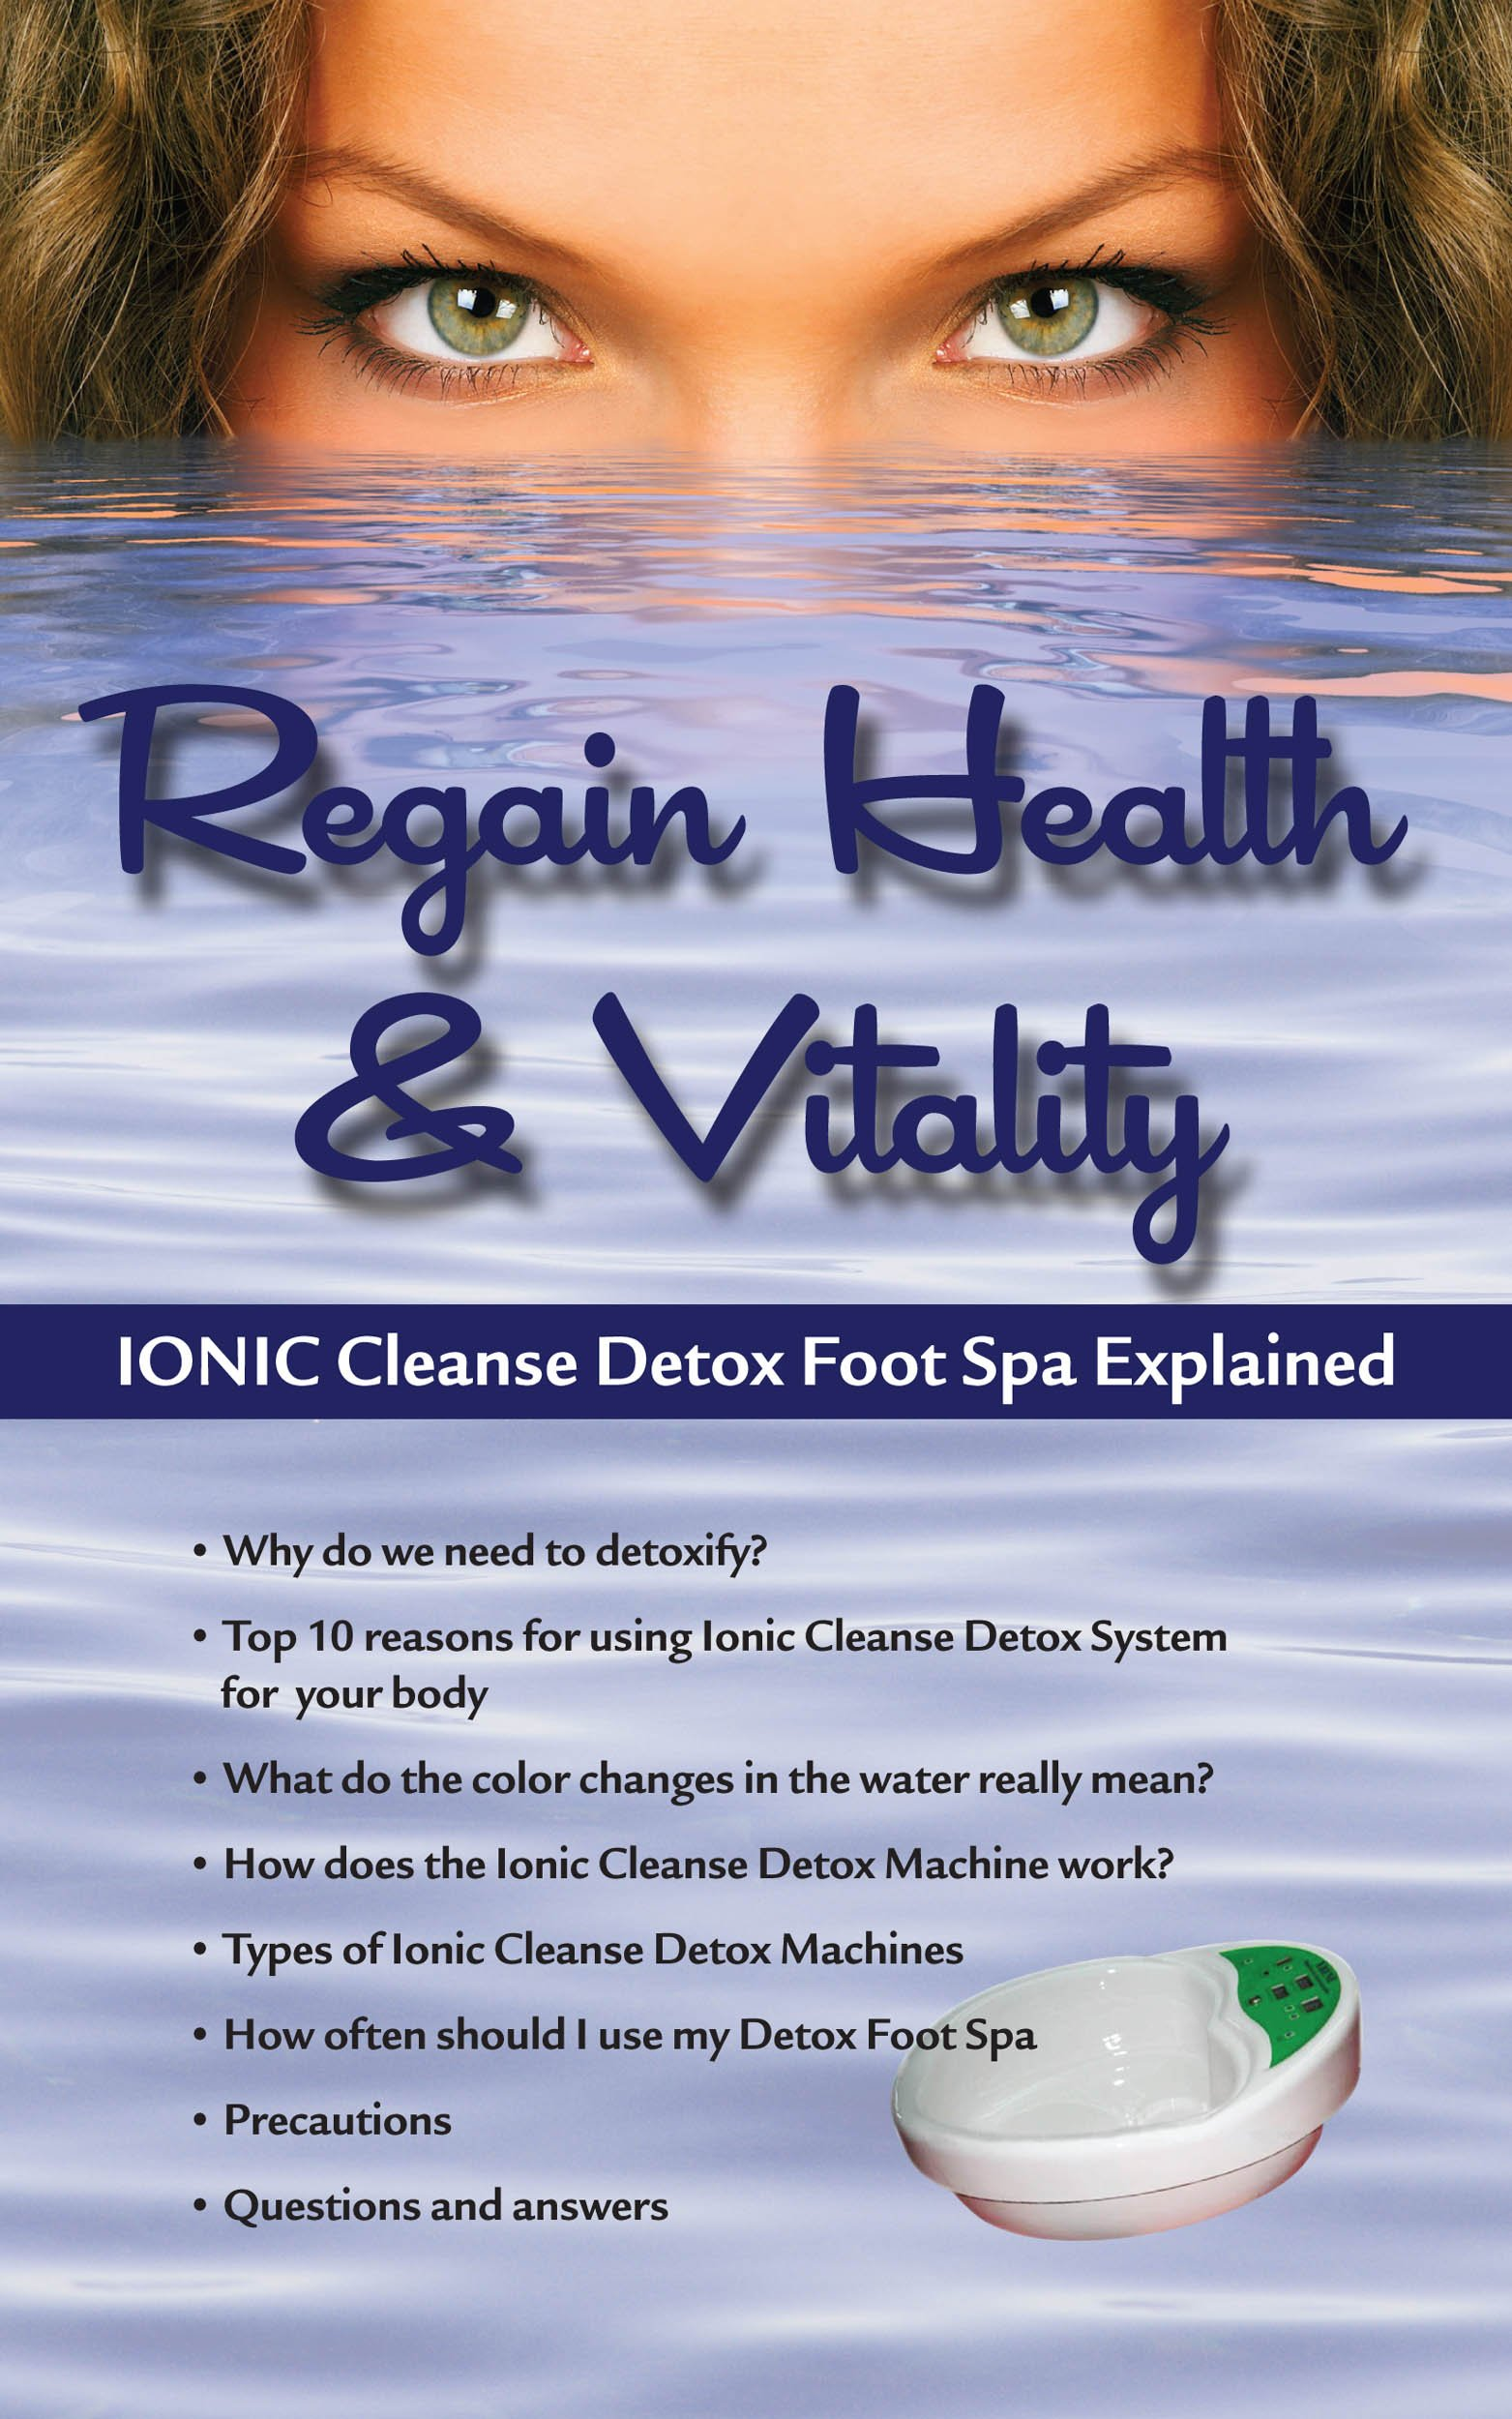 Ionic Cleanse Detox Foot Bath Spa Chi Cleanse Unit for Home Use. NOW WITH SUPER DURY ARRAYS ($60.00 VALUE) by BHC (Image #4)